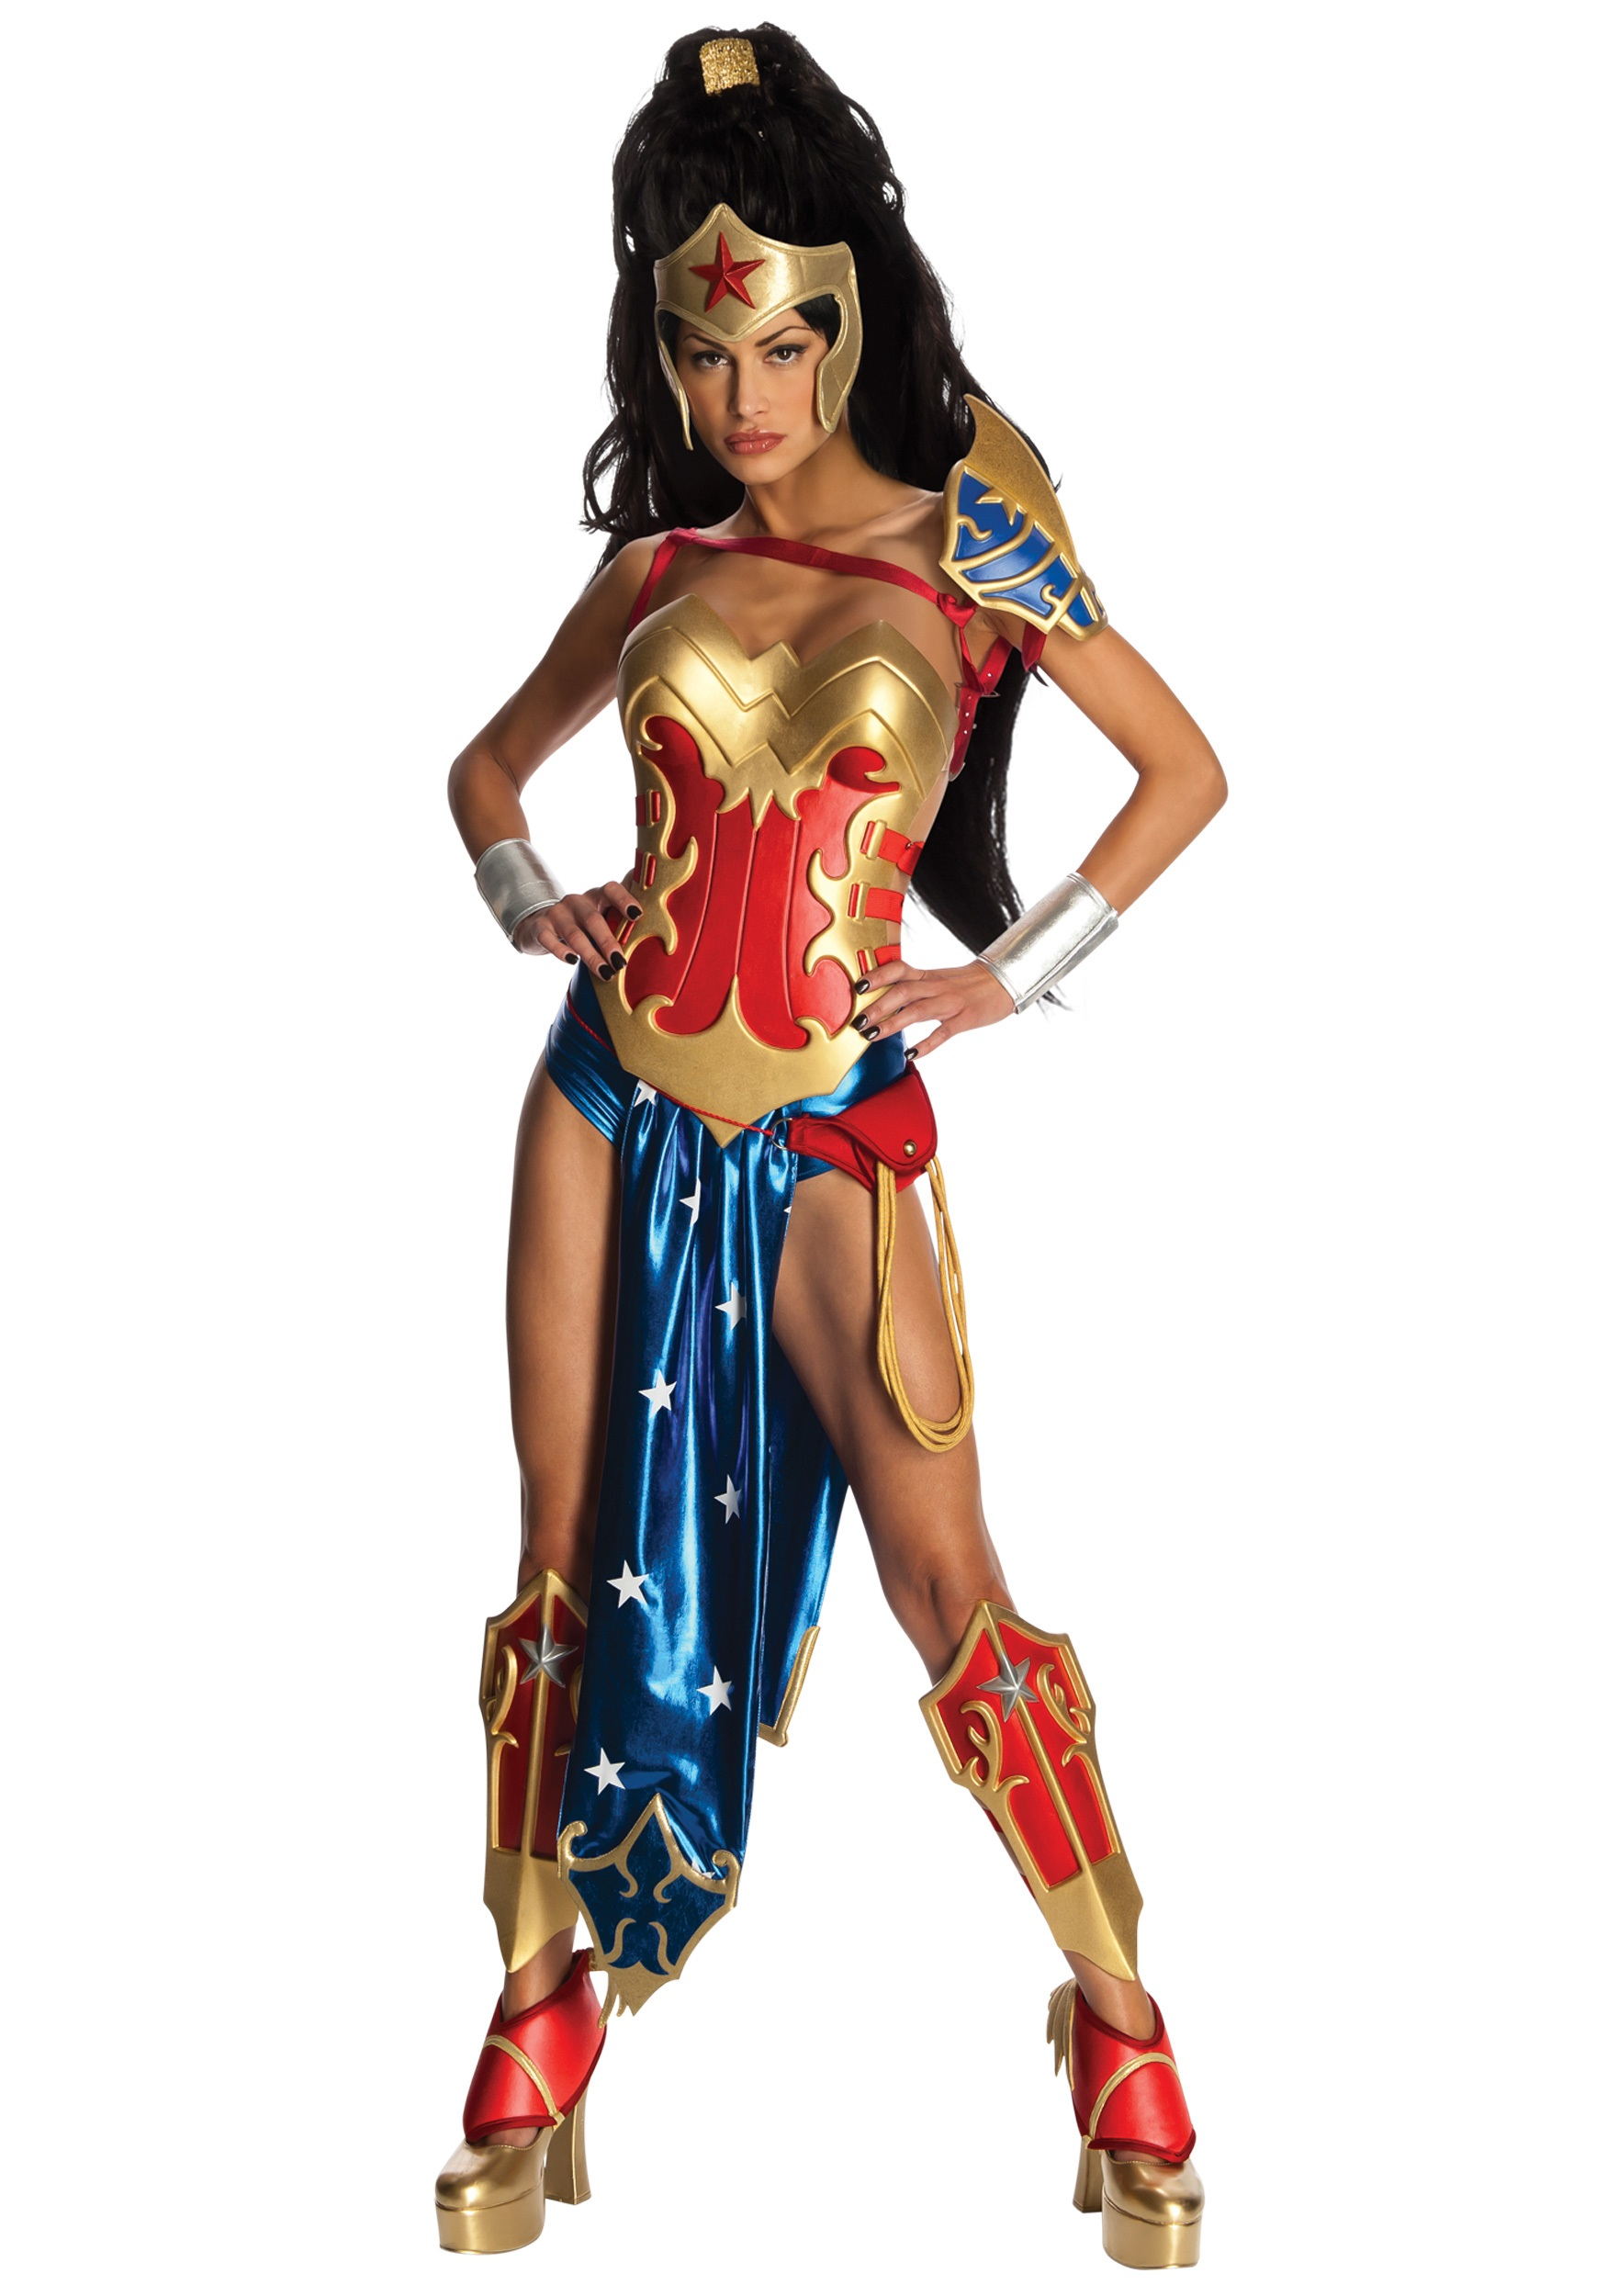 Discontinued Sexy Anime Wonder Woman Costume  sc 1 st  Halloween Costume Ideas & Anime/Manga Costumes - Graphic Novel Costumes